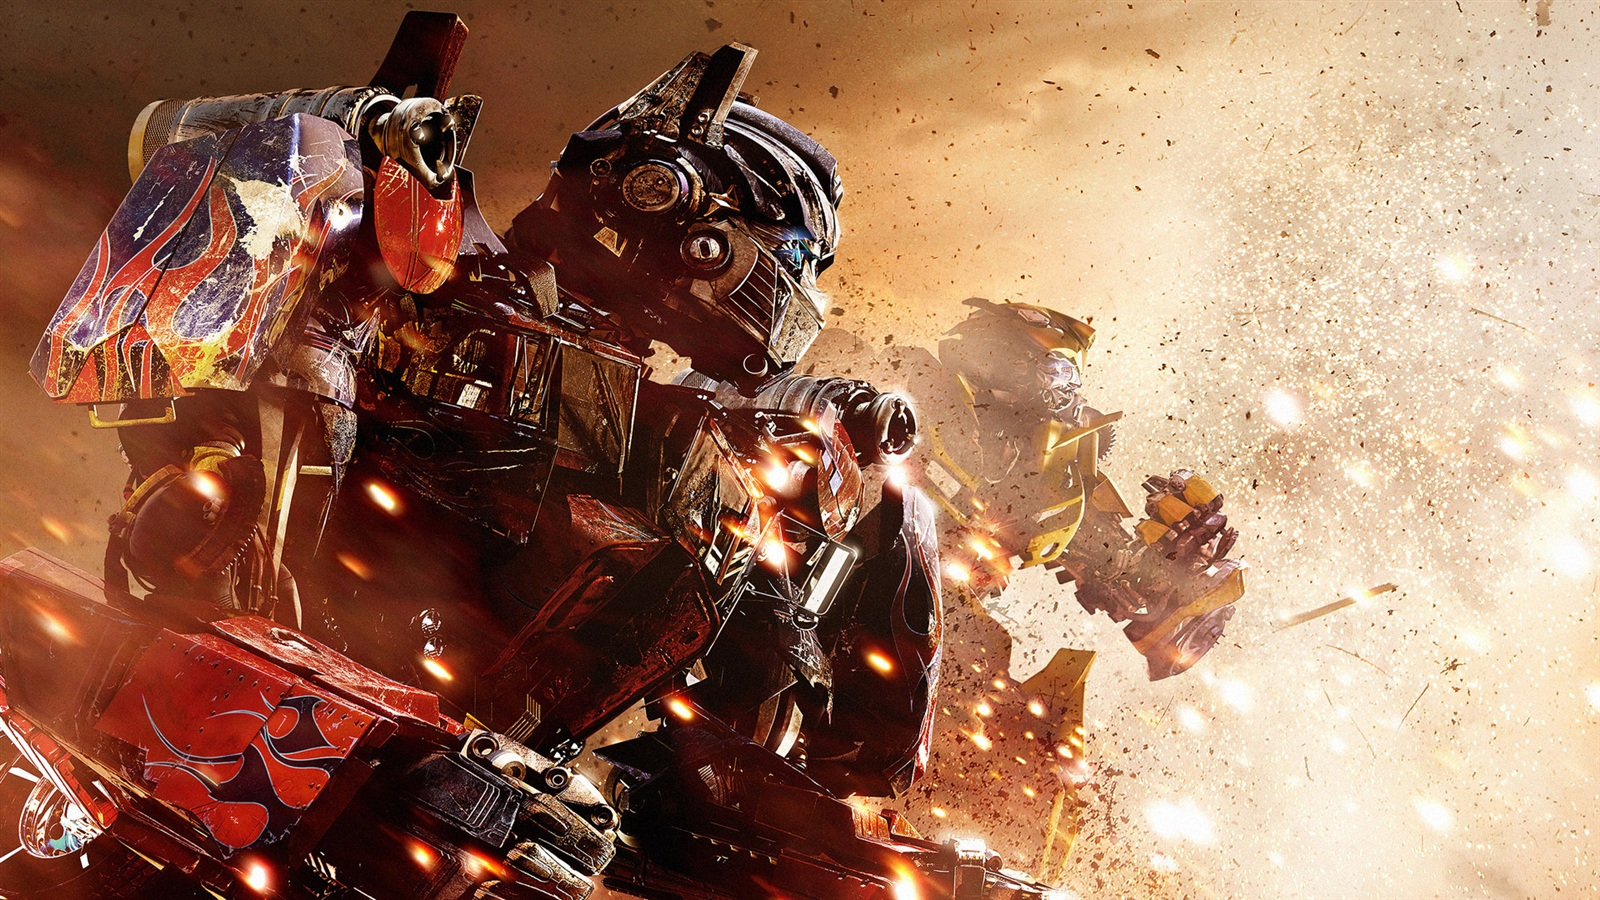 Optimus Prime and Bumblebee in Transformers 3 wallpaper 1600x900